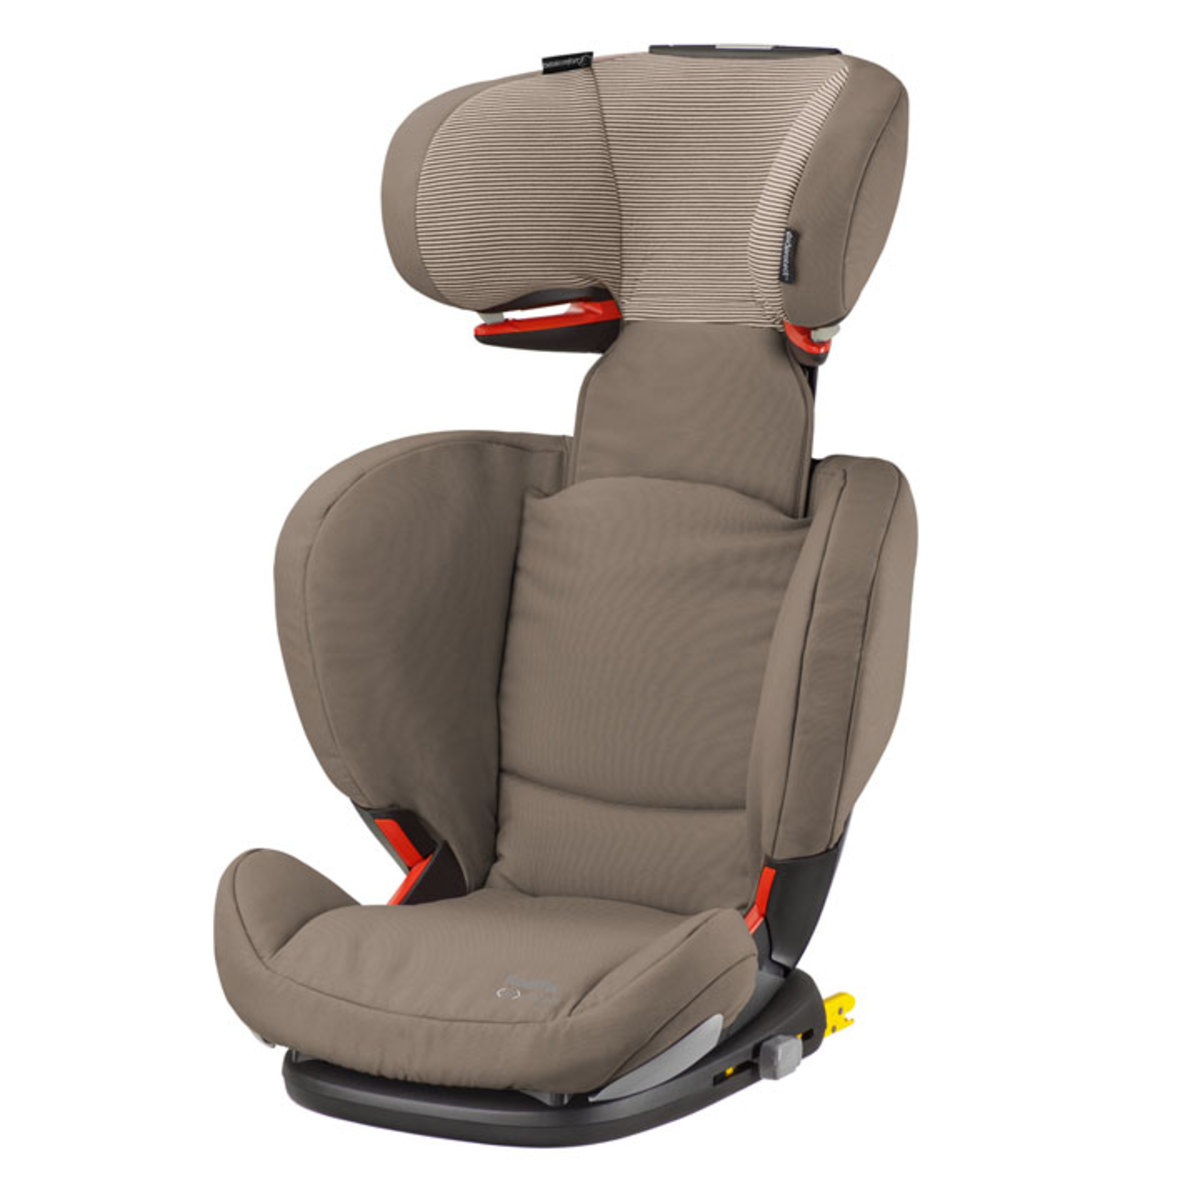 b b confort si ge auto isofix rodifix airprotect groupe 2 3 earth brown si ge auto et coque. Black Bedroom Furniture Sets. Home Design Ideas